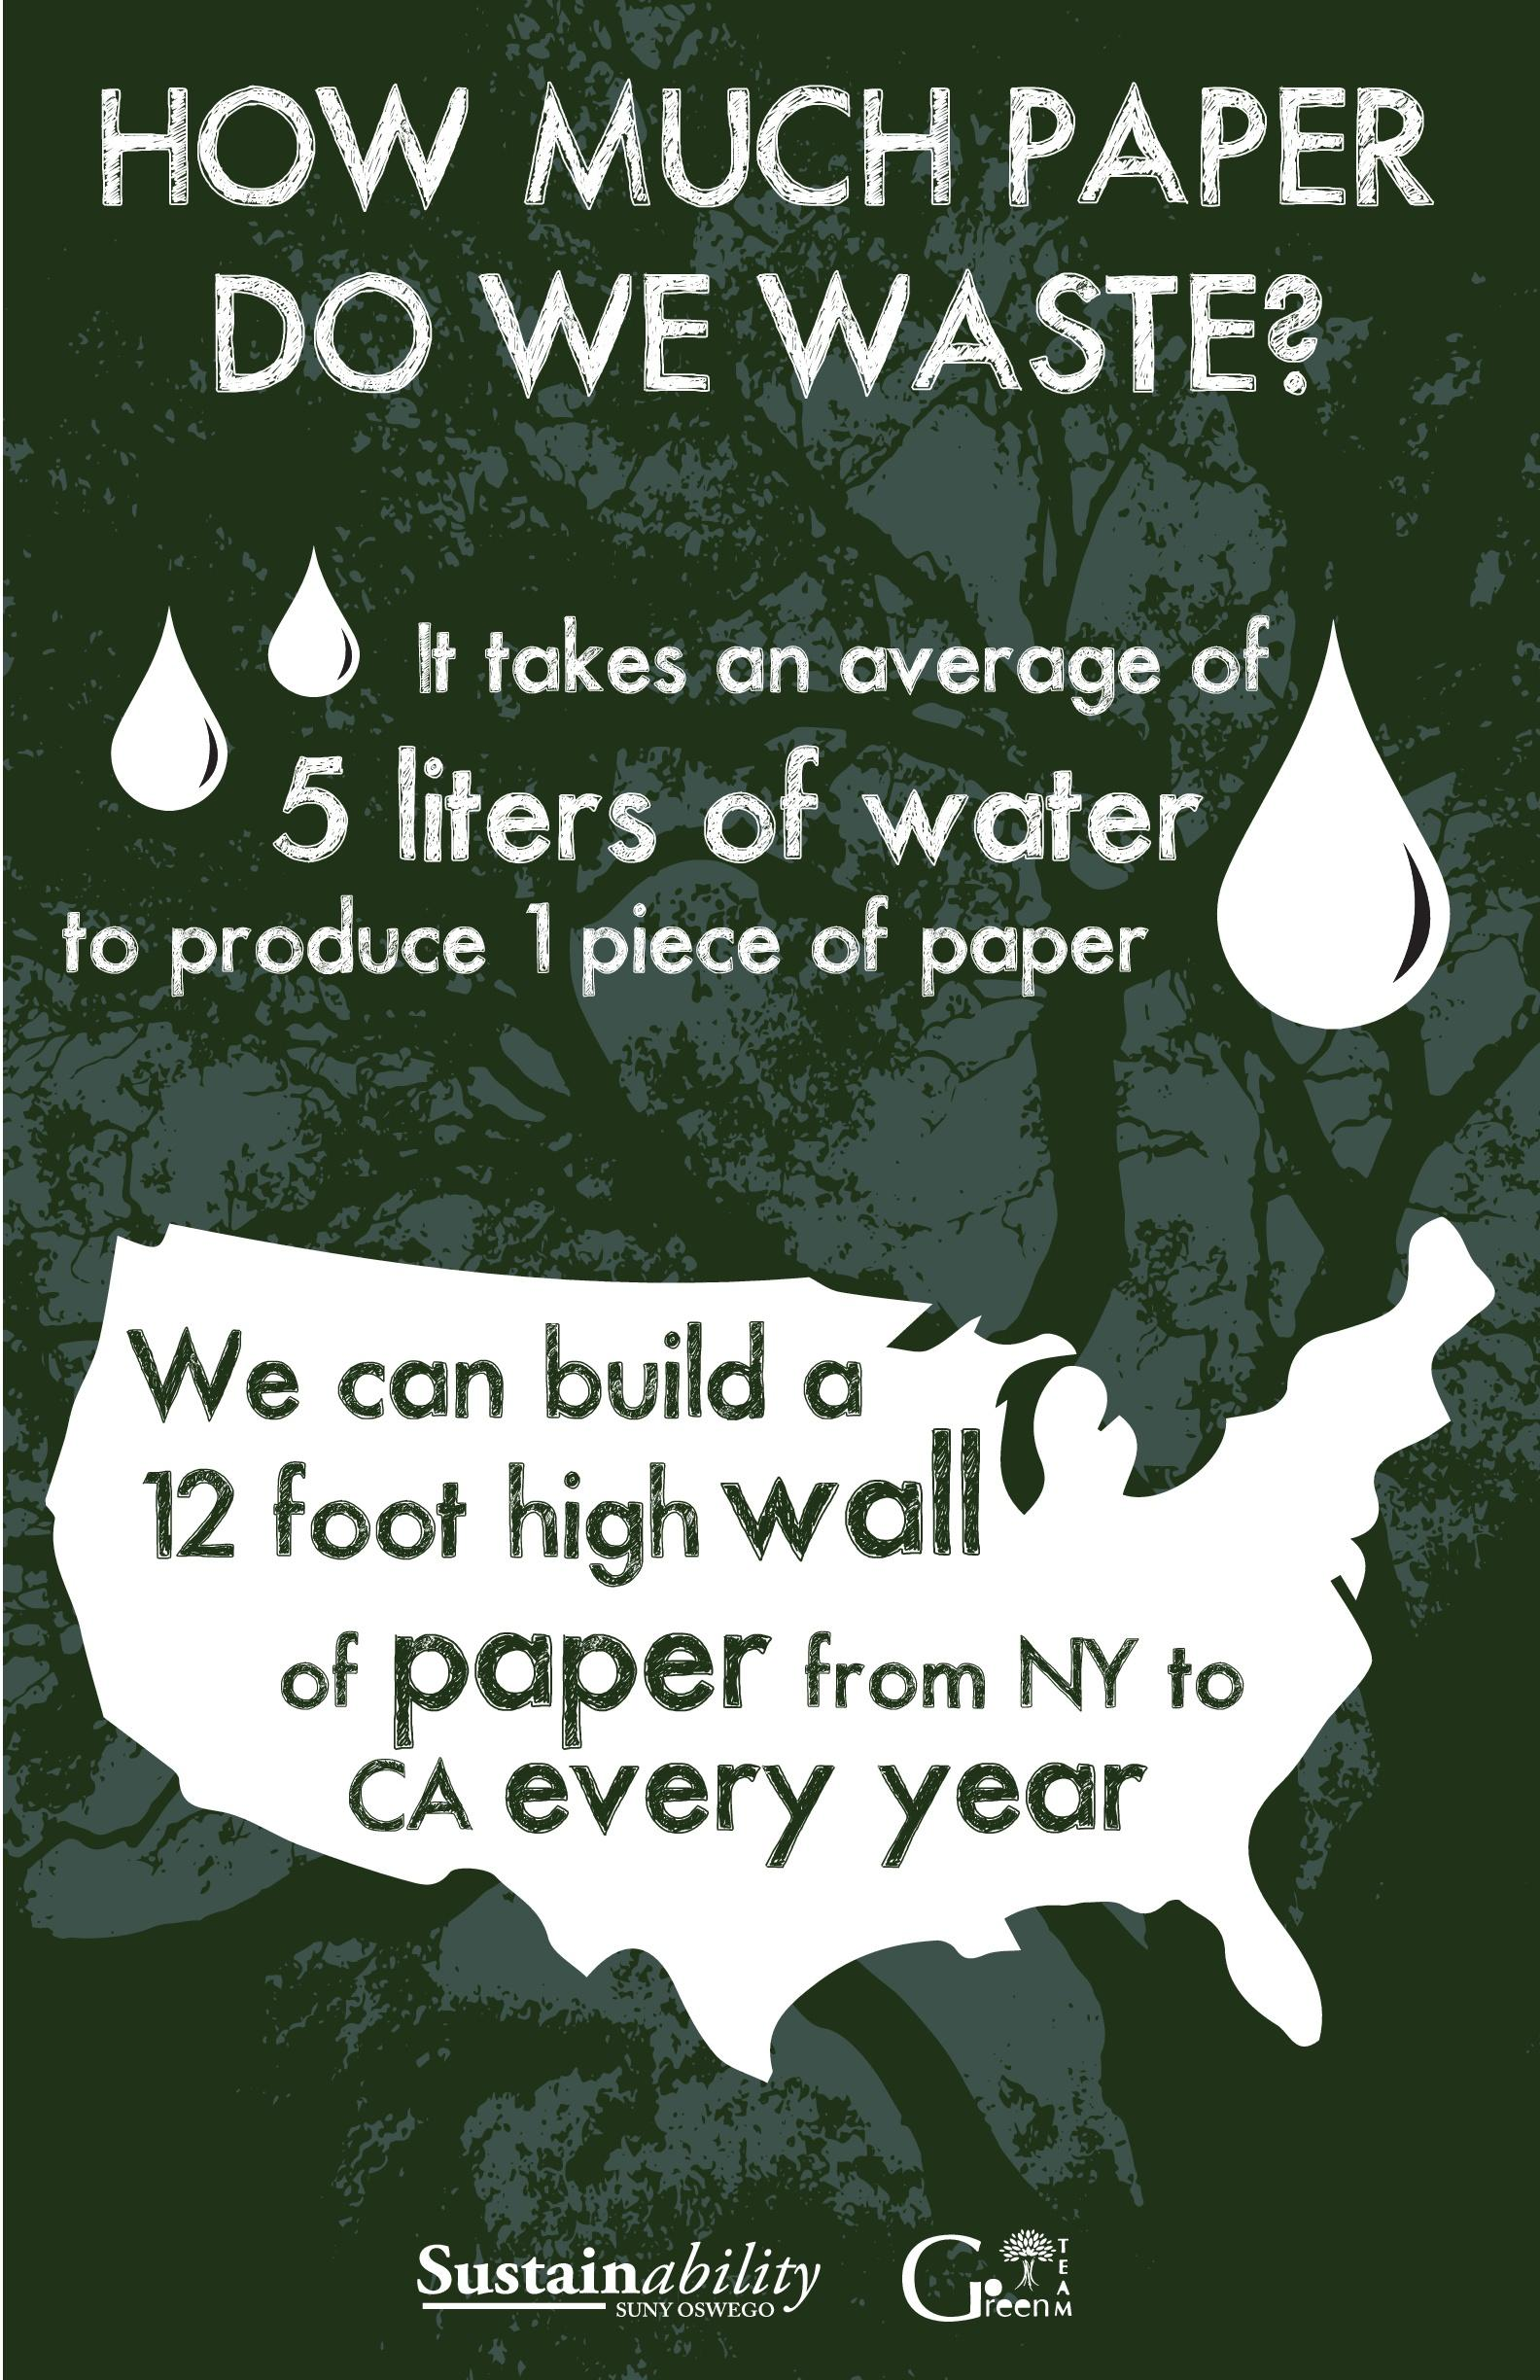 How Much Paper Do We Waste: It takes an average of 5 liters of water to produce 1 piece of paper.We can build a 12 foot high wall of paper from NY to CA every year.